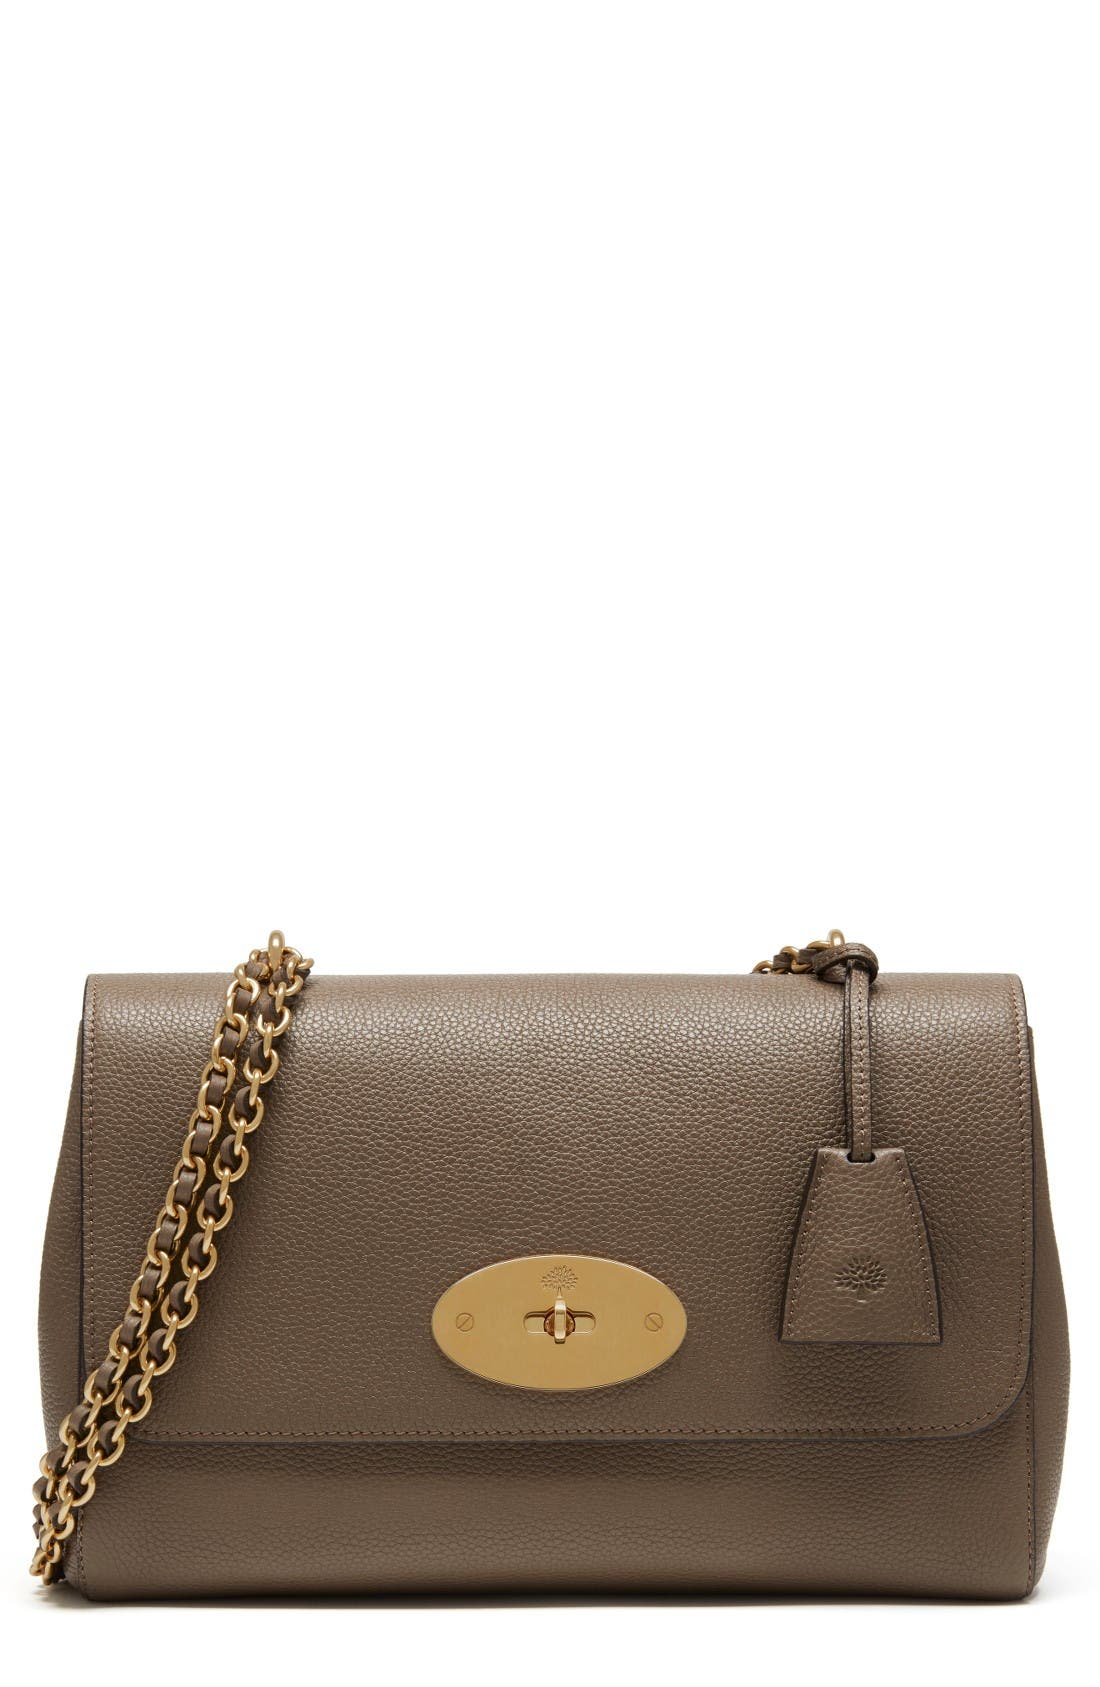 Main Image - Mulberry Medium Lily Convertible Leather Crossbody Clutch